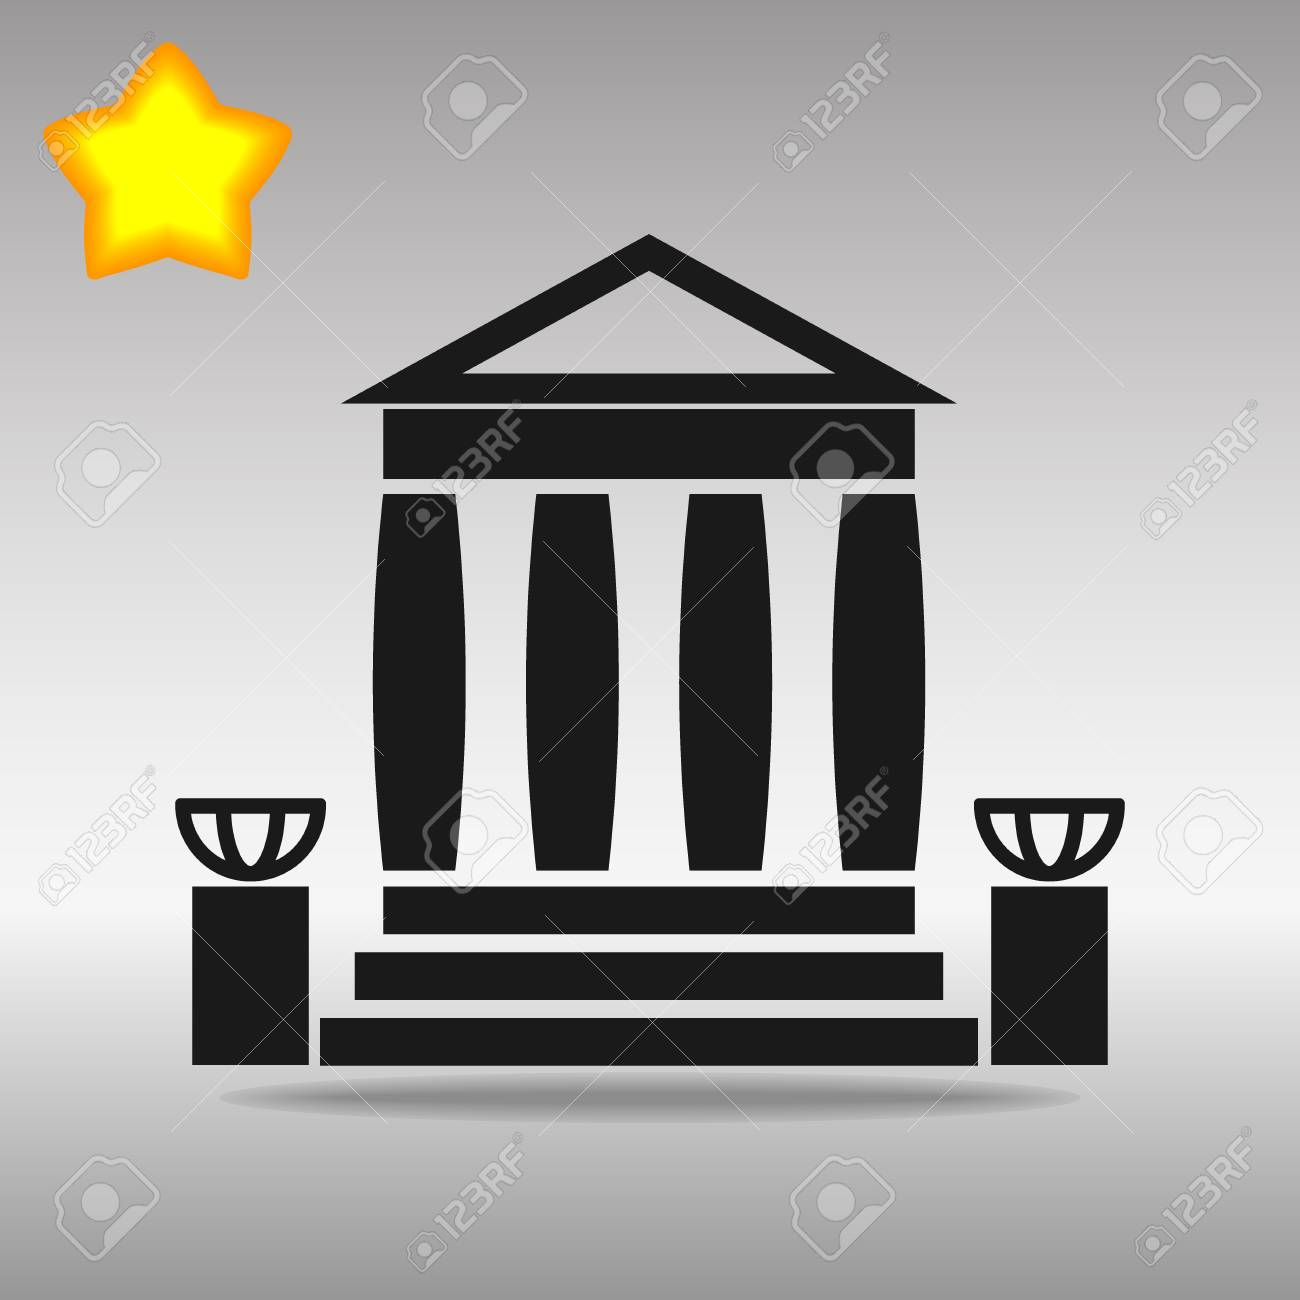 bank building black Icon button logo symbol concept high quality on the gray background - 79142248